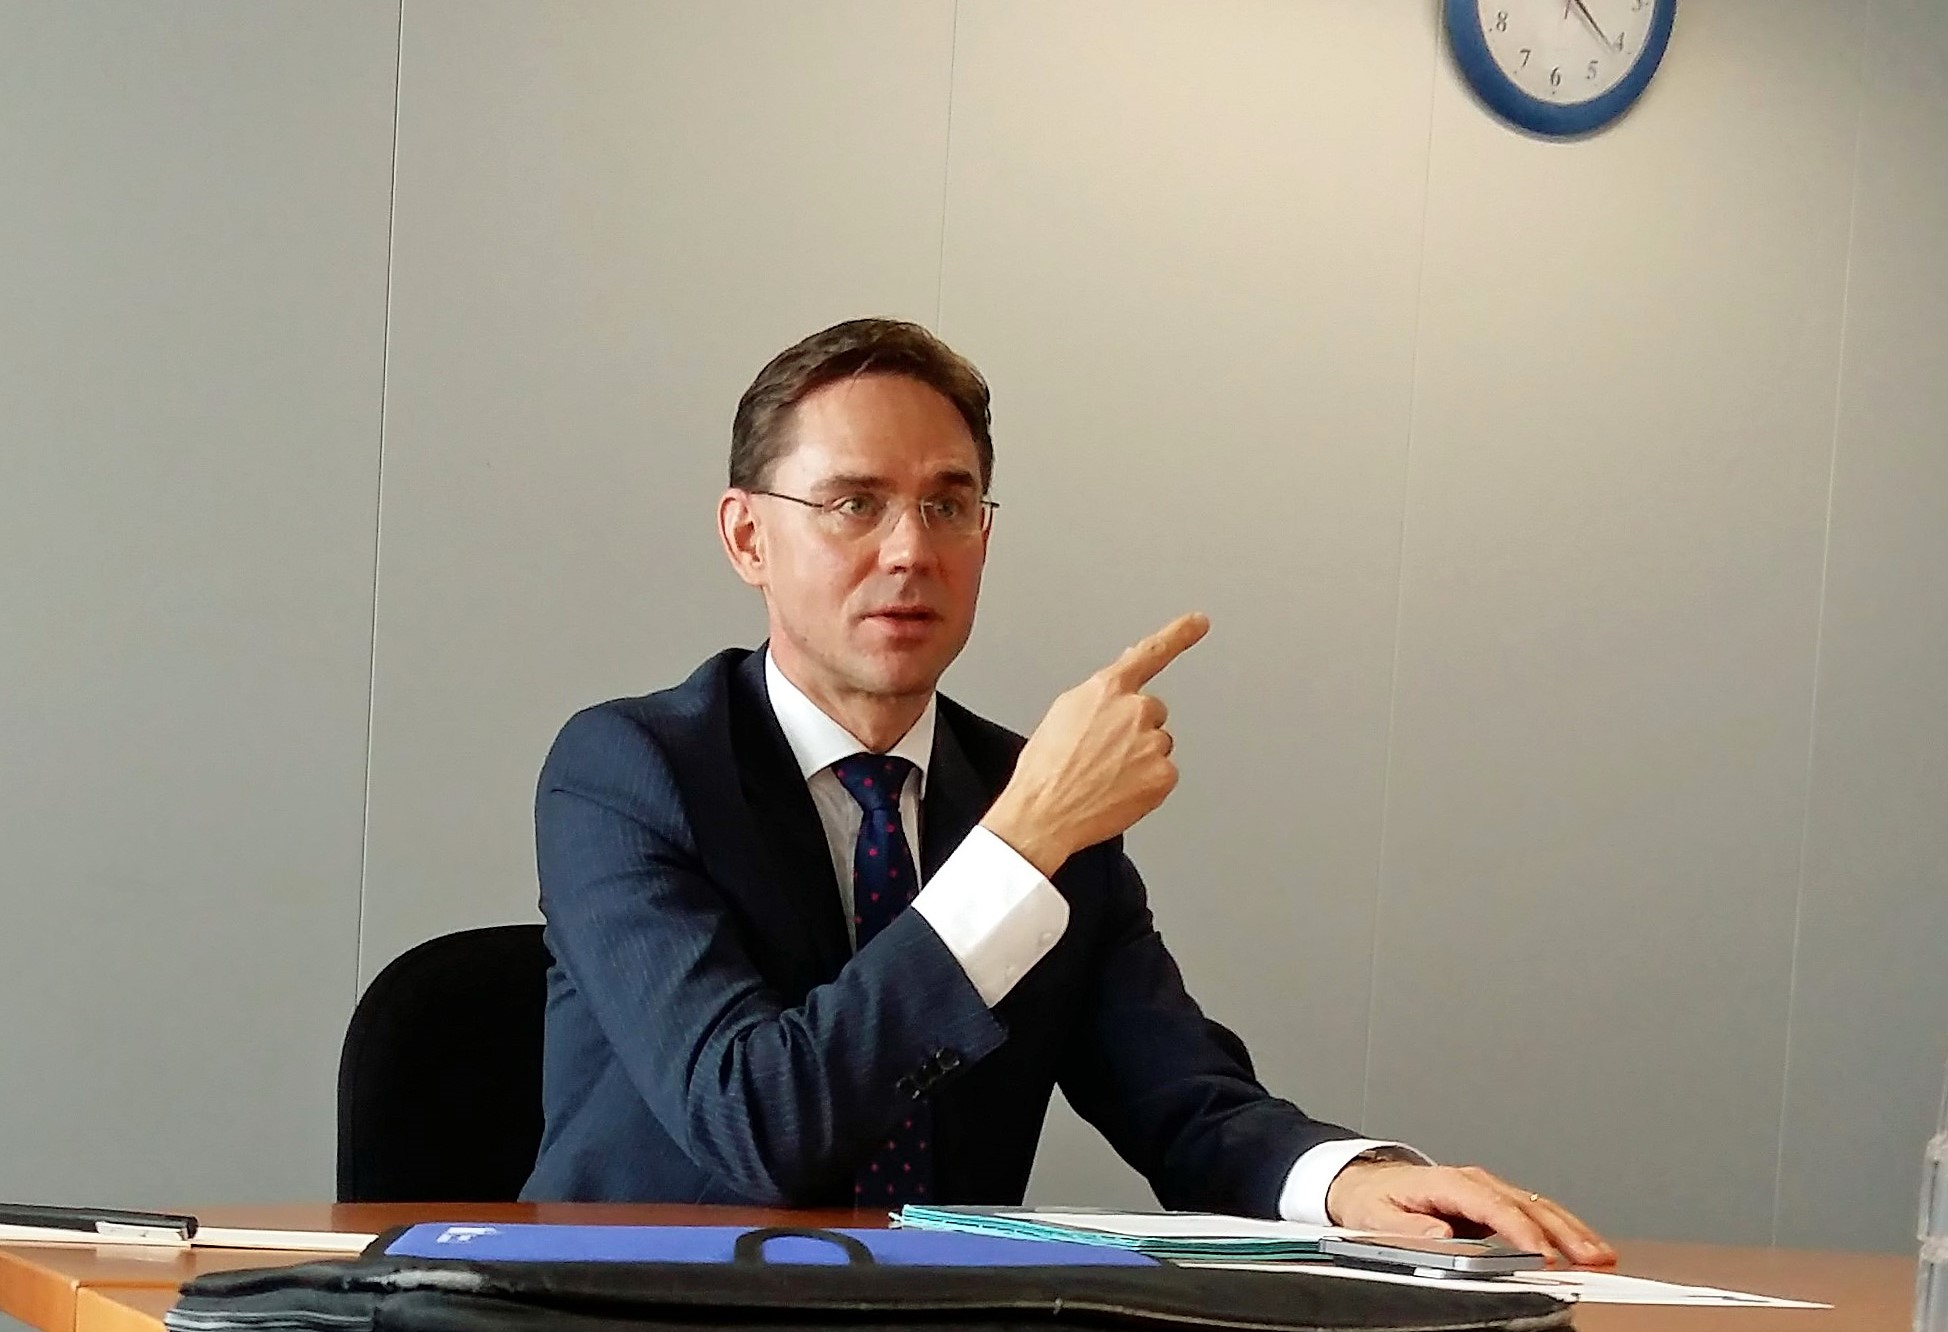 Jyrki Katainen: Populism threatens stability and risks increasing unemployment